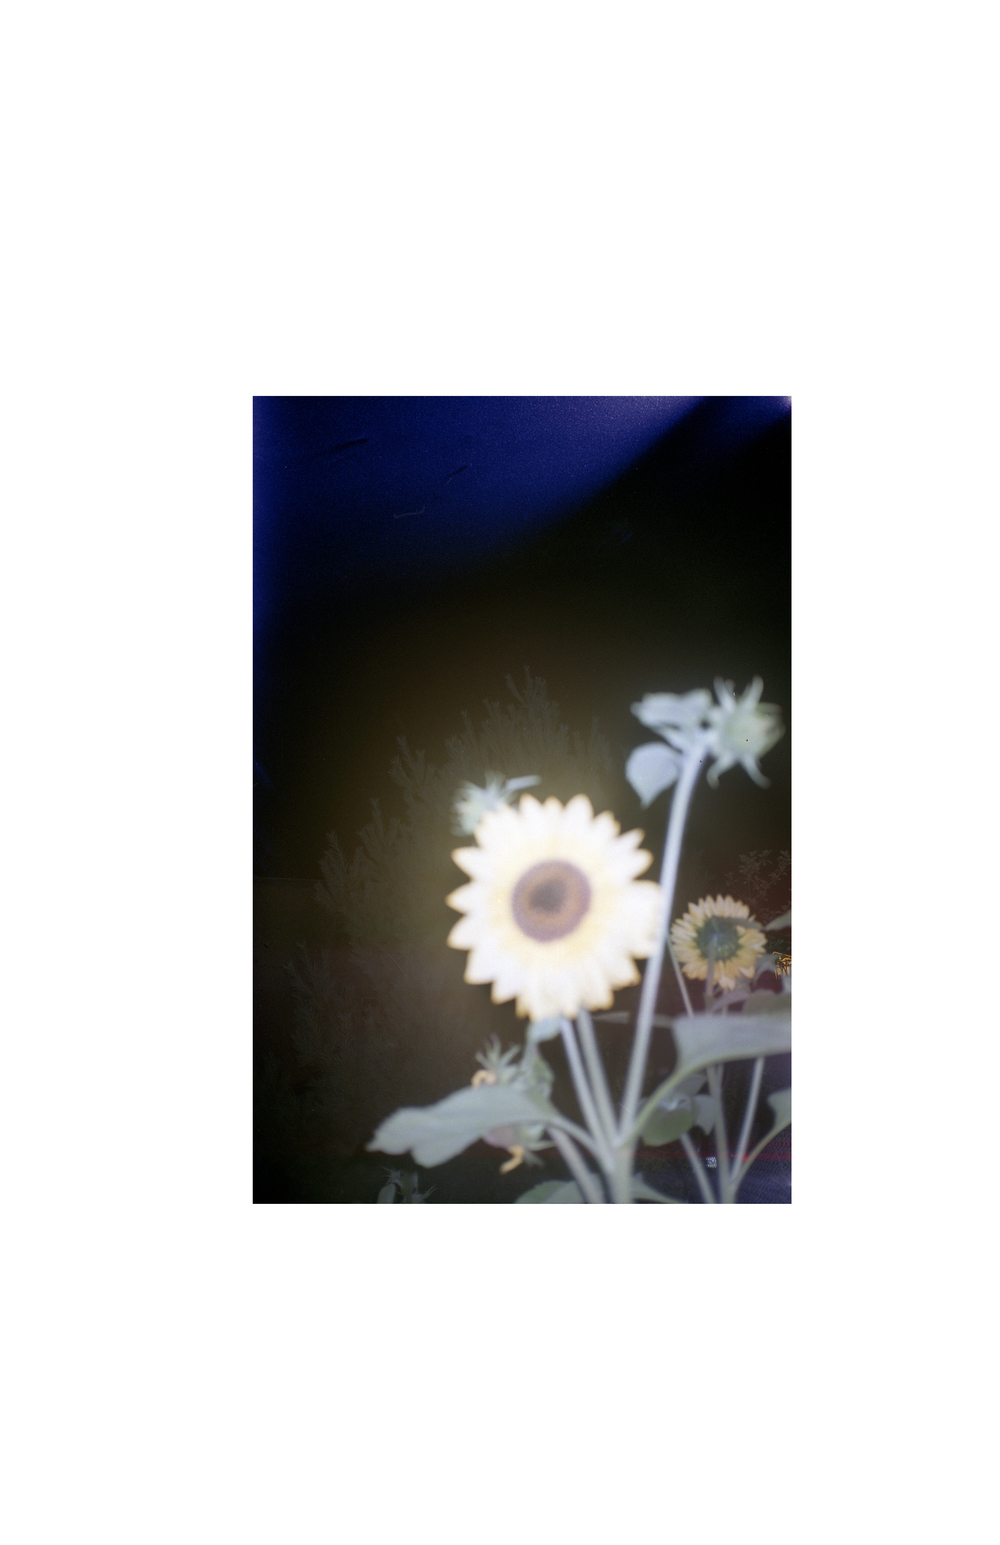 Untitled-1flowersama.jpg